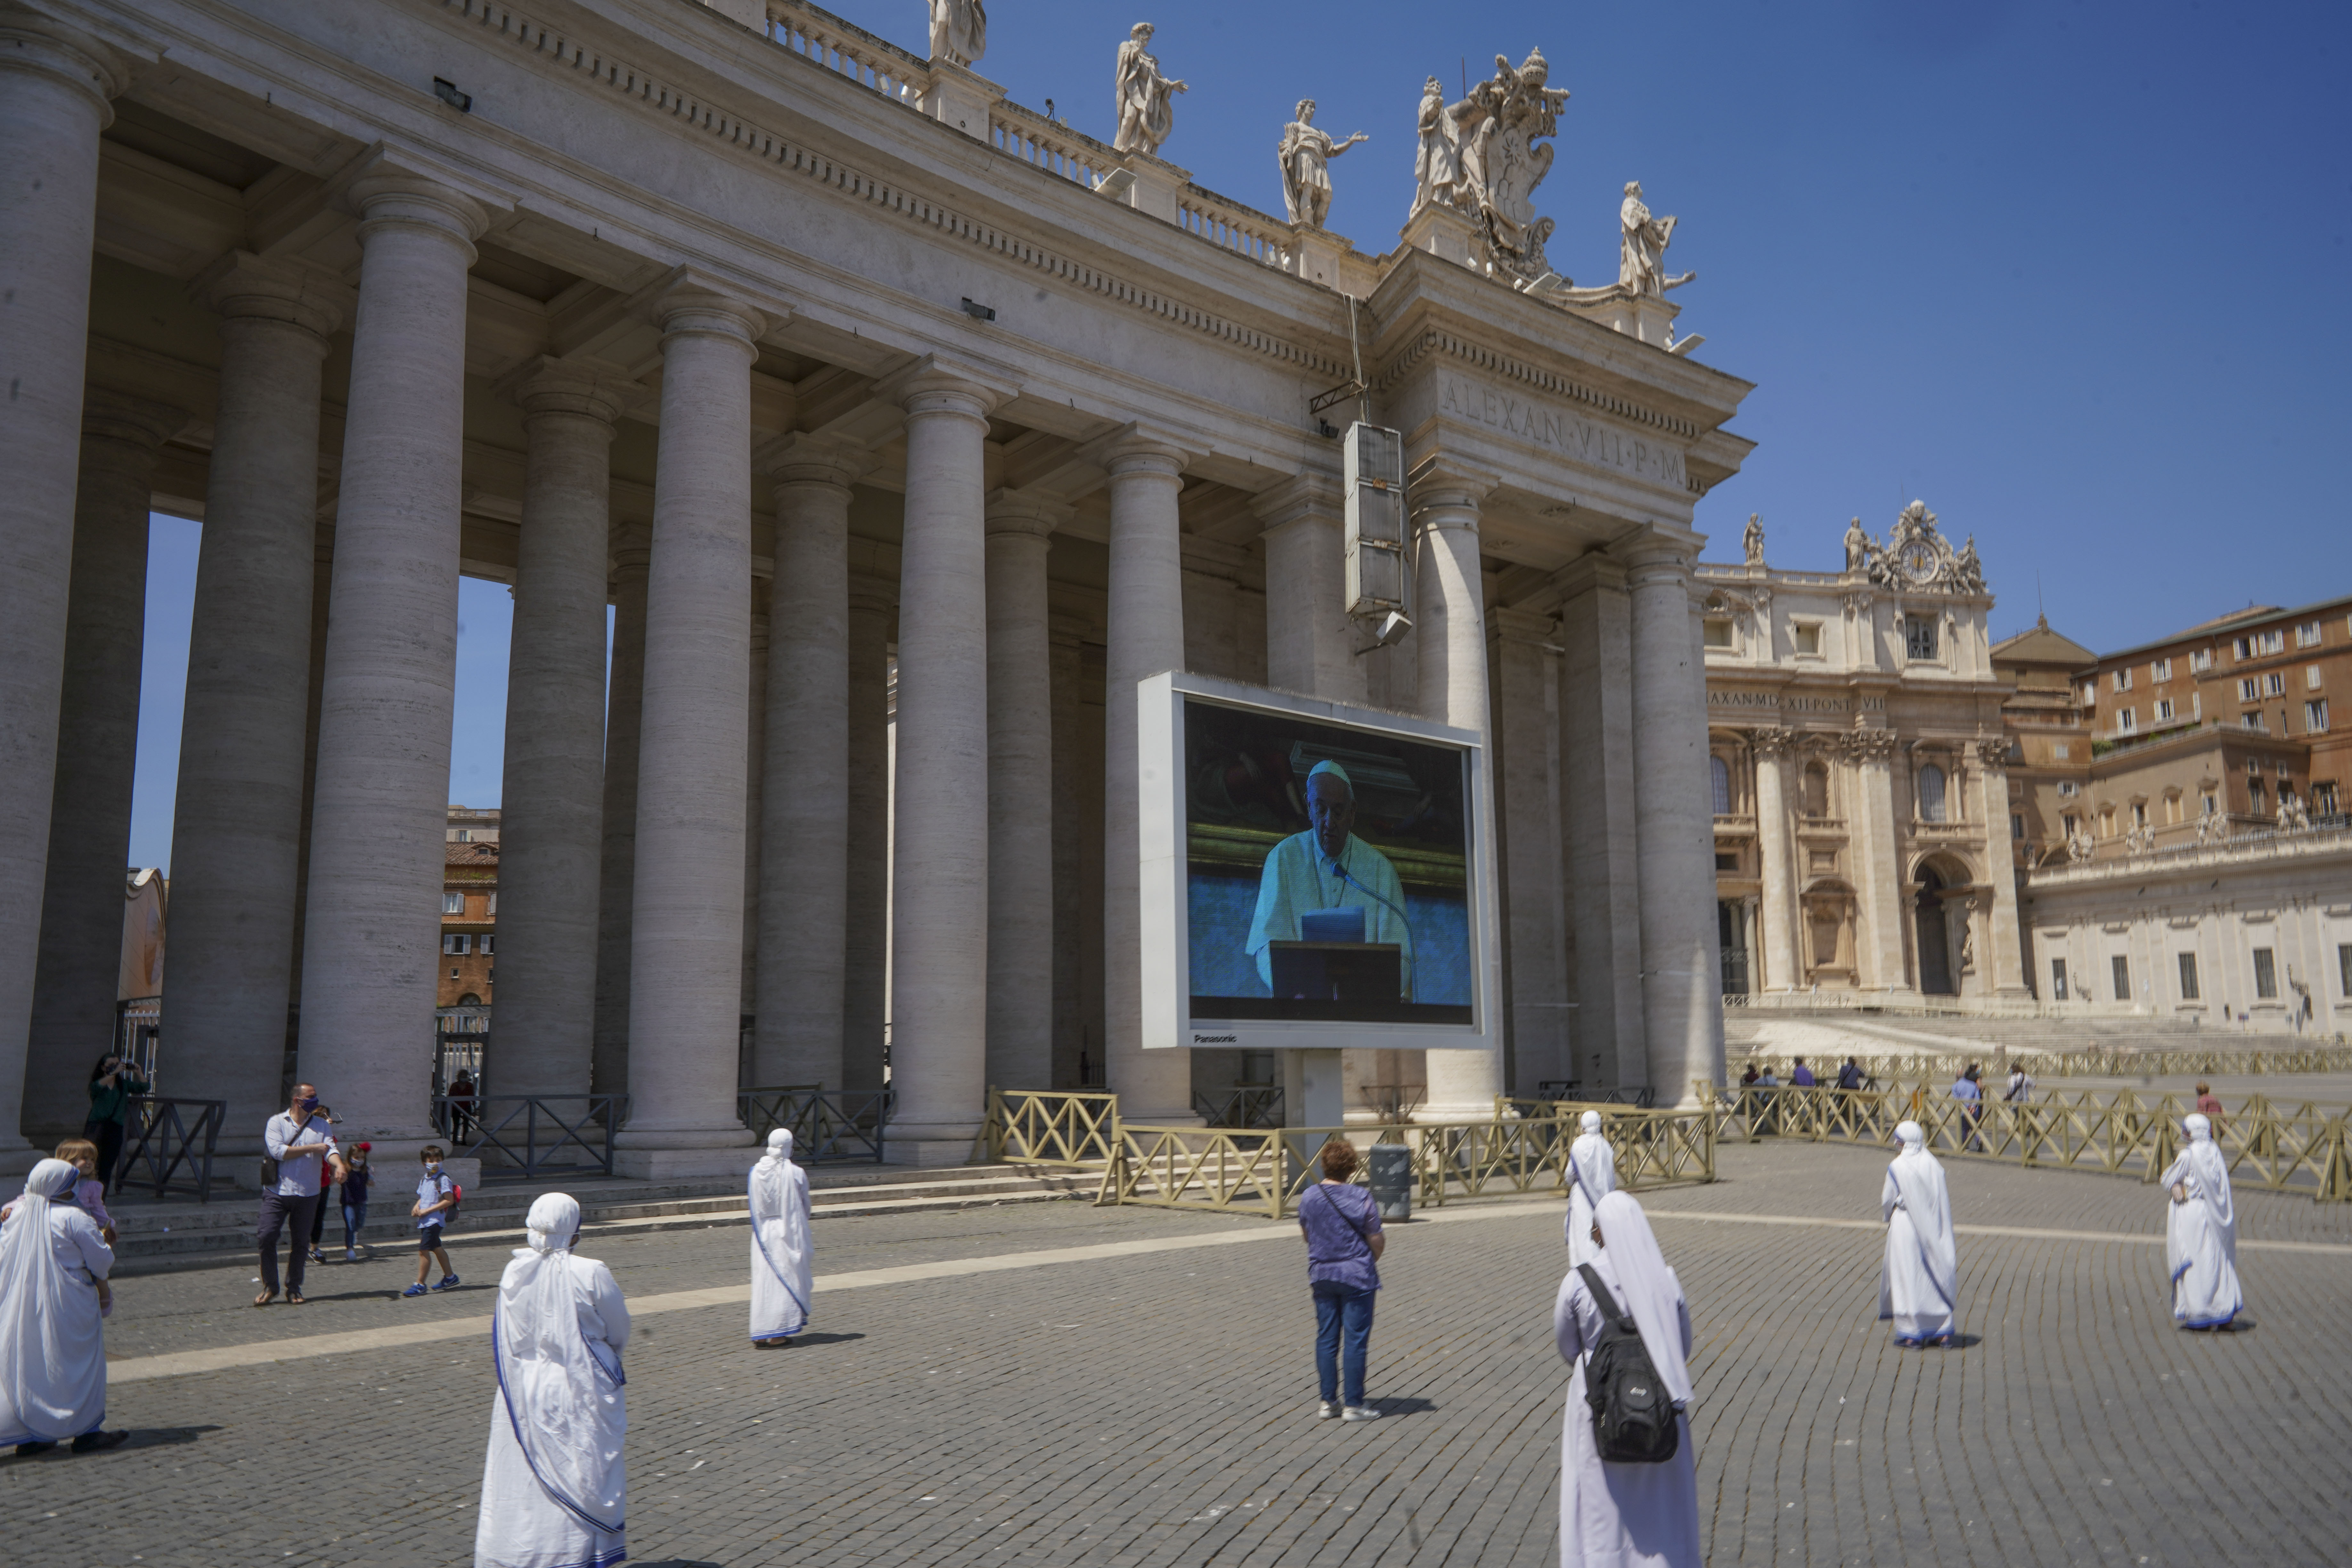 Nuns and faithful respecting social distancing look at Pope Francis reciting the Regina Coeli noon prayer on a giant screen in St. Peter's Square, at the Vatican, Sunday, May 24, 2020. For the first time in months, well-spaced faithful gathered in St. Peter's Square for the traditional Sunday papal blessing, casting their gaze at the window where the pope normally addresses the faithful, since the square had been closed due to anti-coronavirus lockdown measures.  (AP Photo/Andrew Medichini)